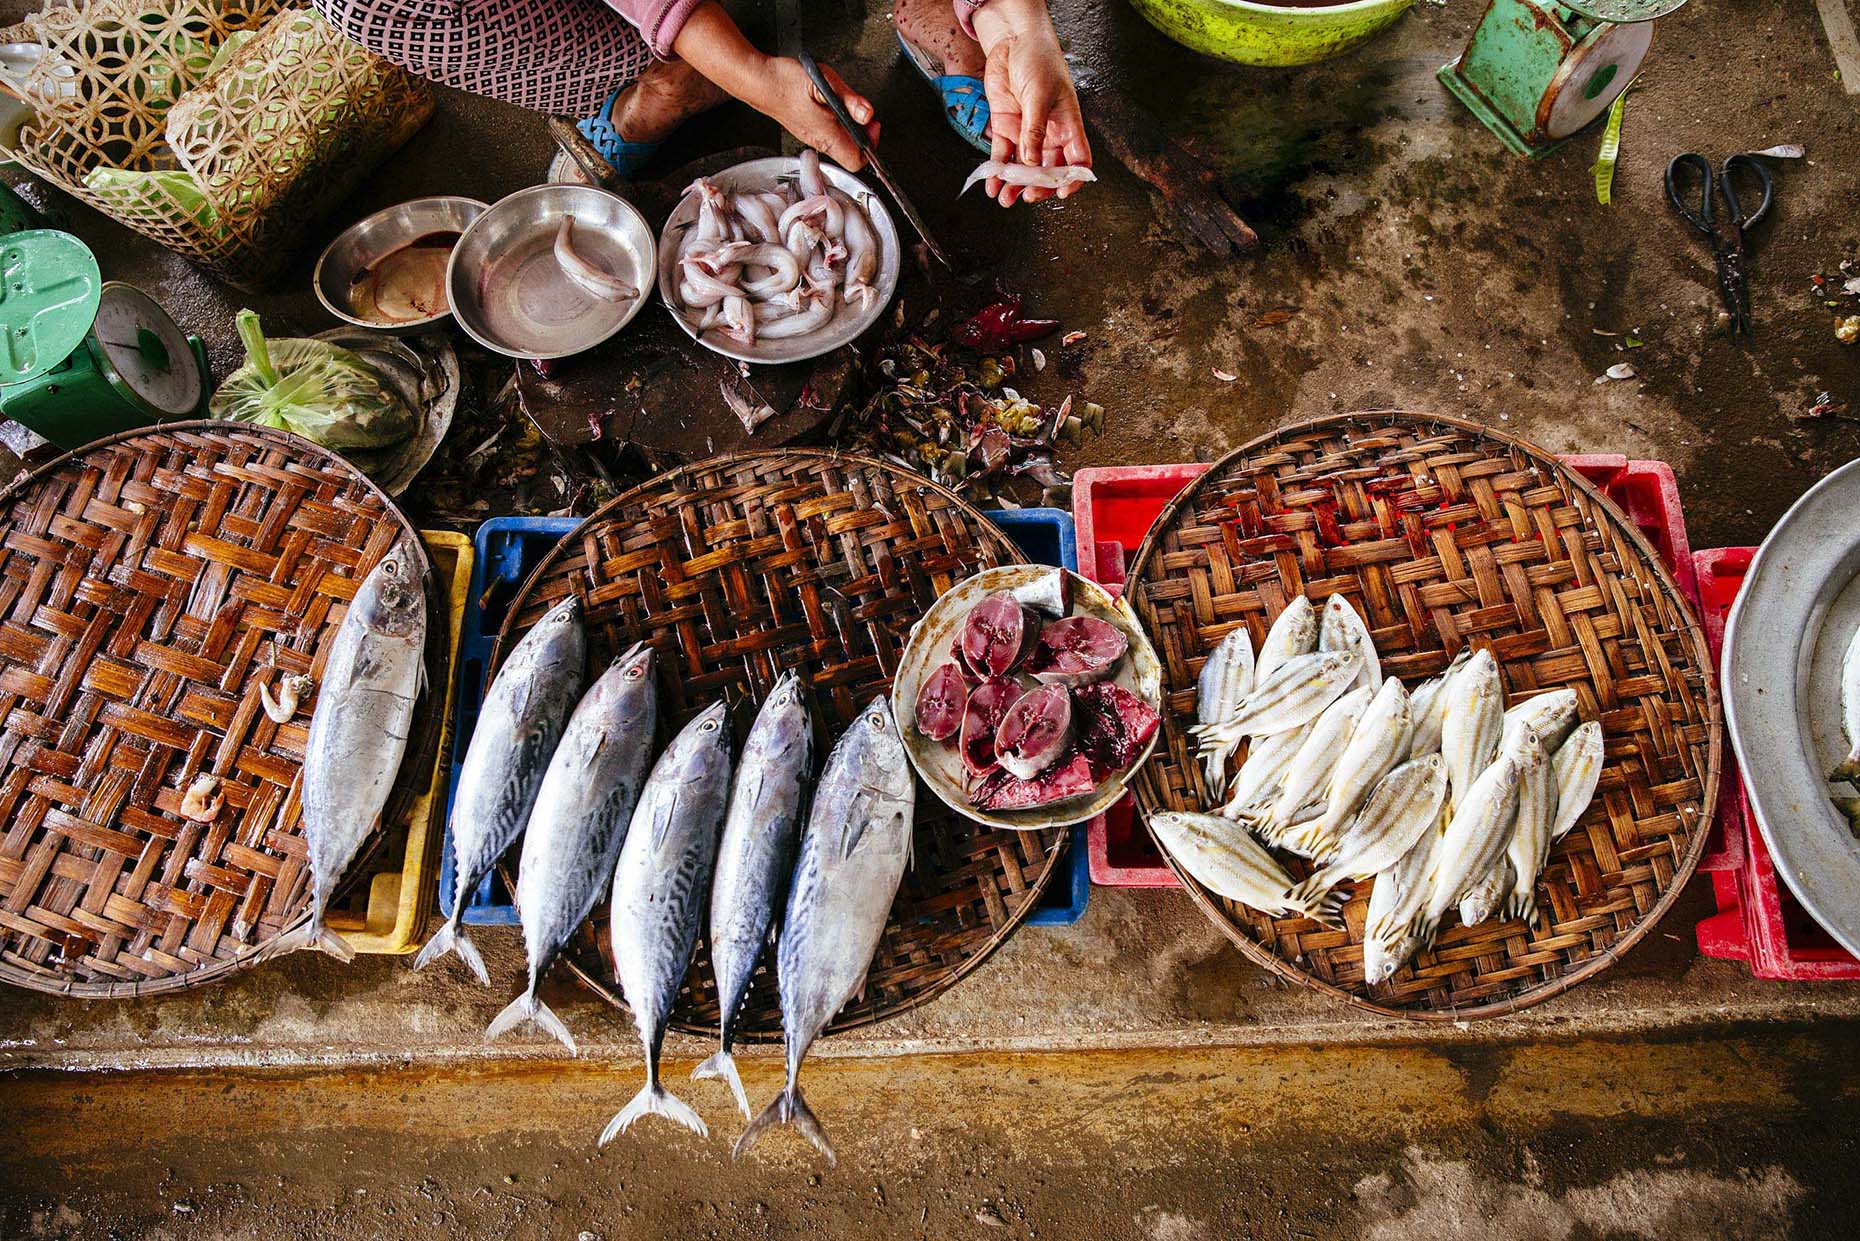 Woman-selling-fresh-fish-in-street-market-Inti-St-Clair-is201601150872